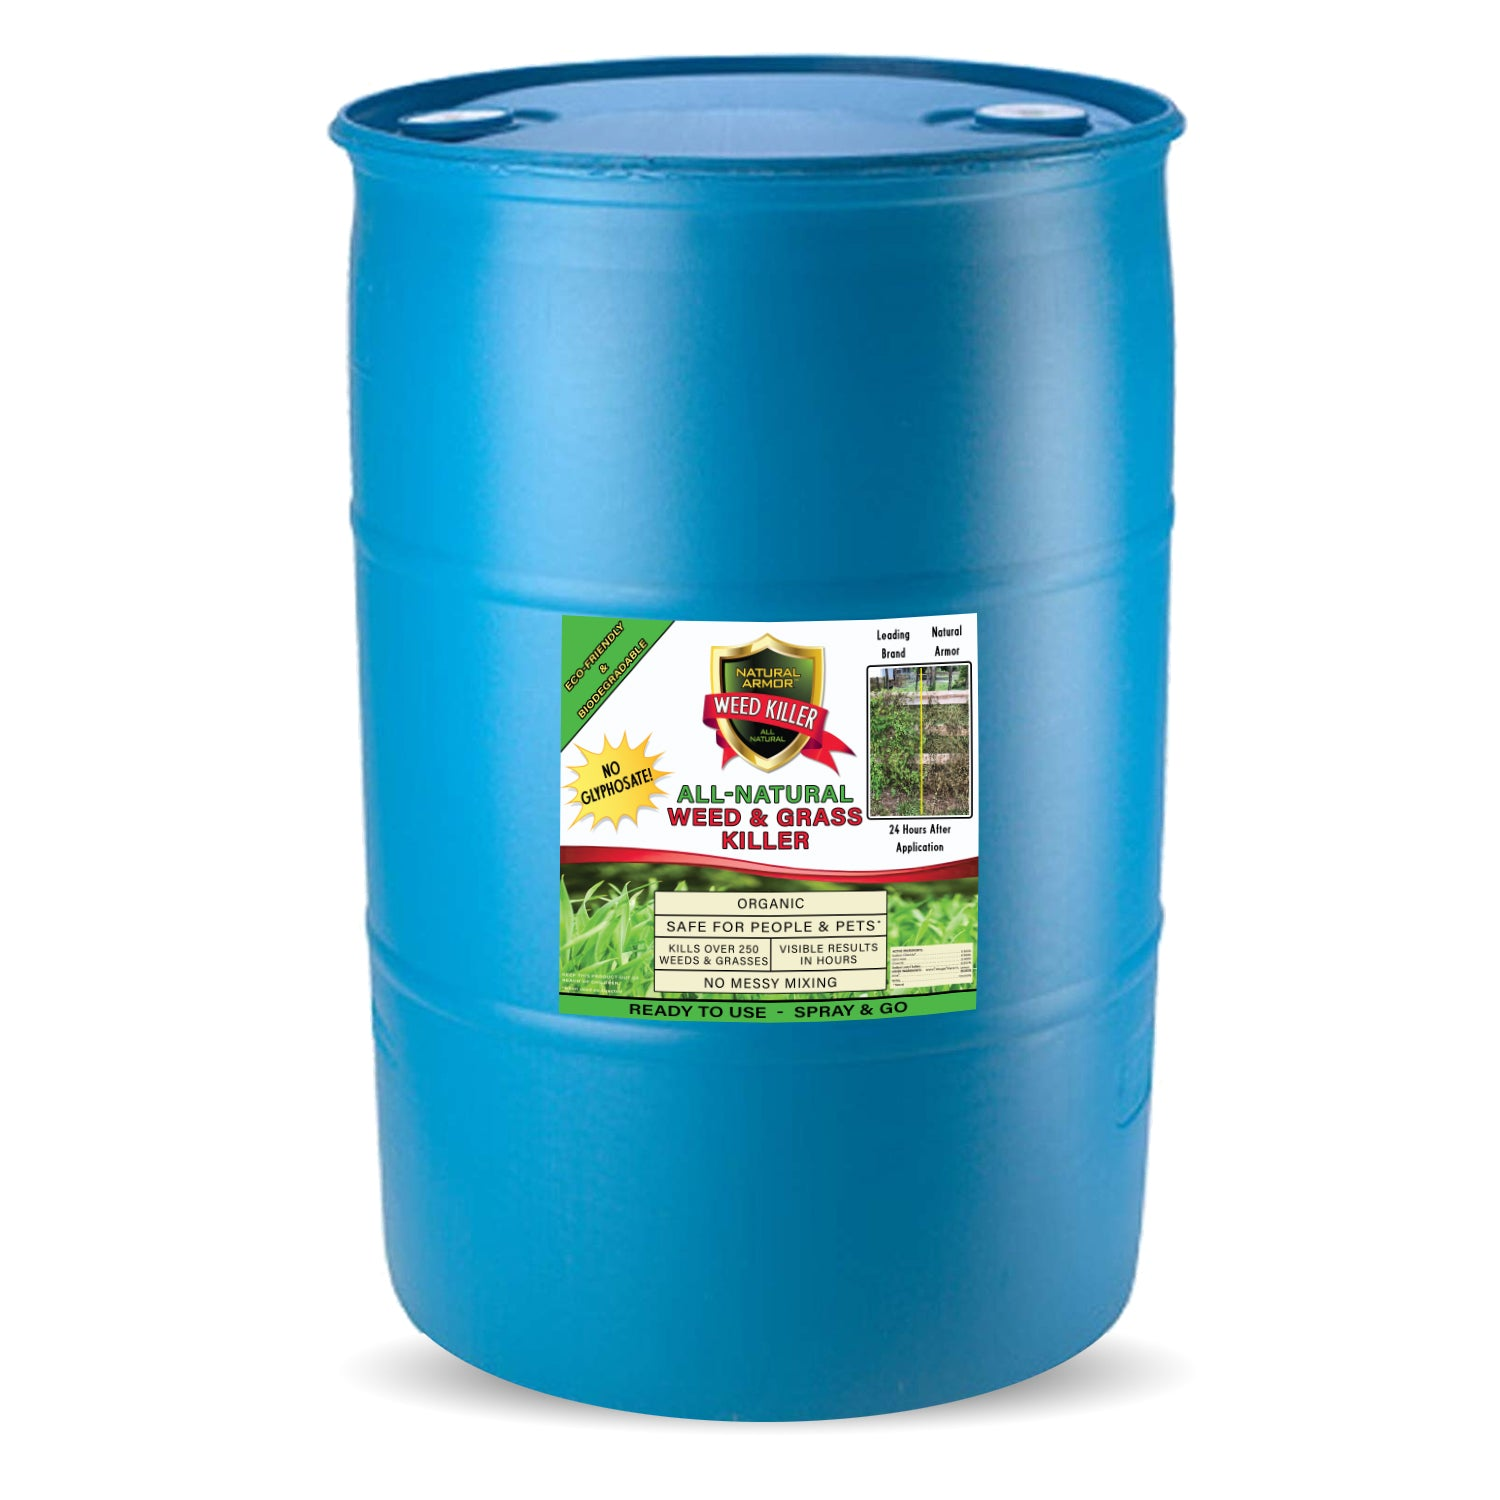 Natural Armor All-Natural Weed Killer — (1) 55 Gallons - Ready to Use